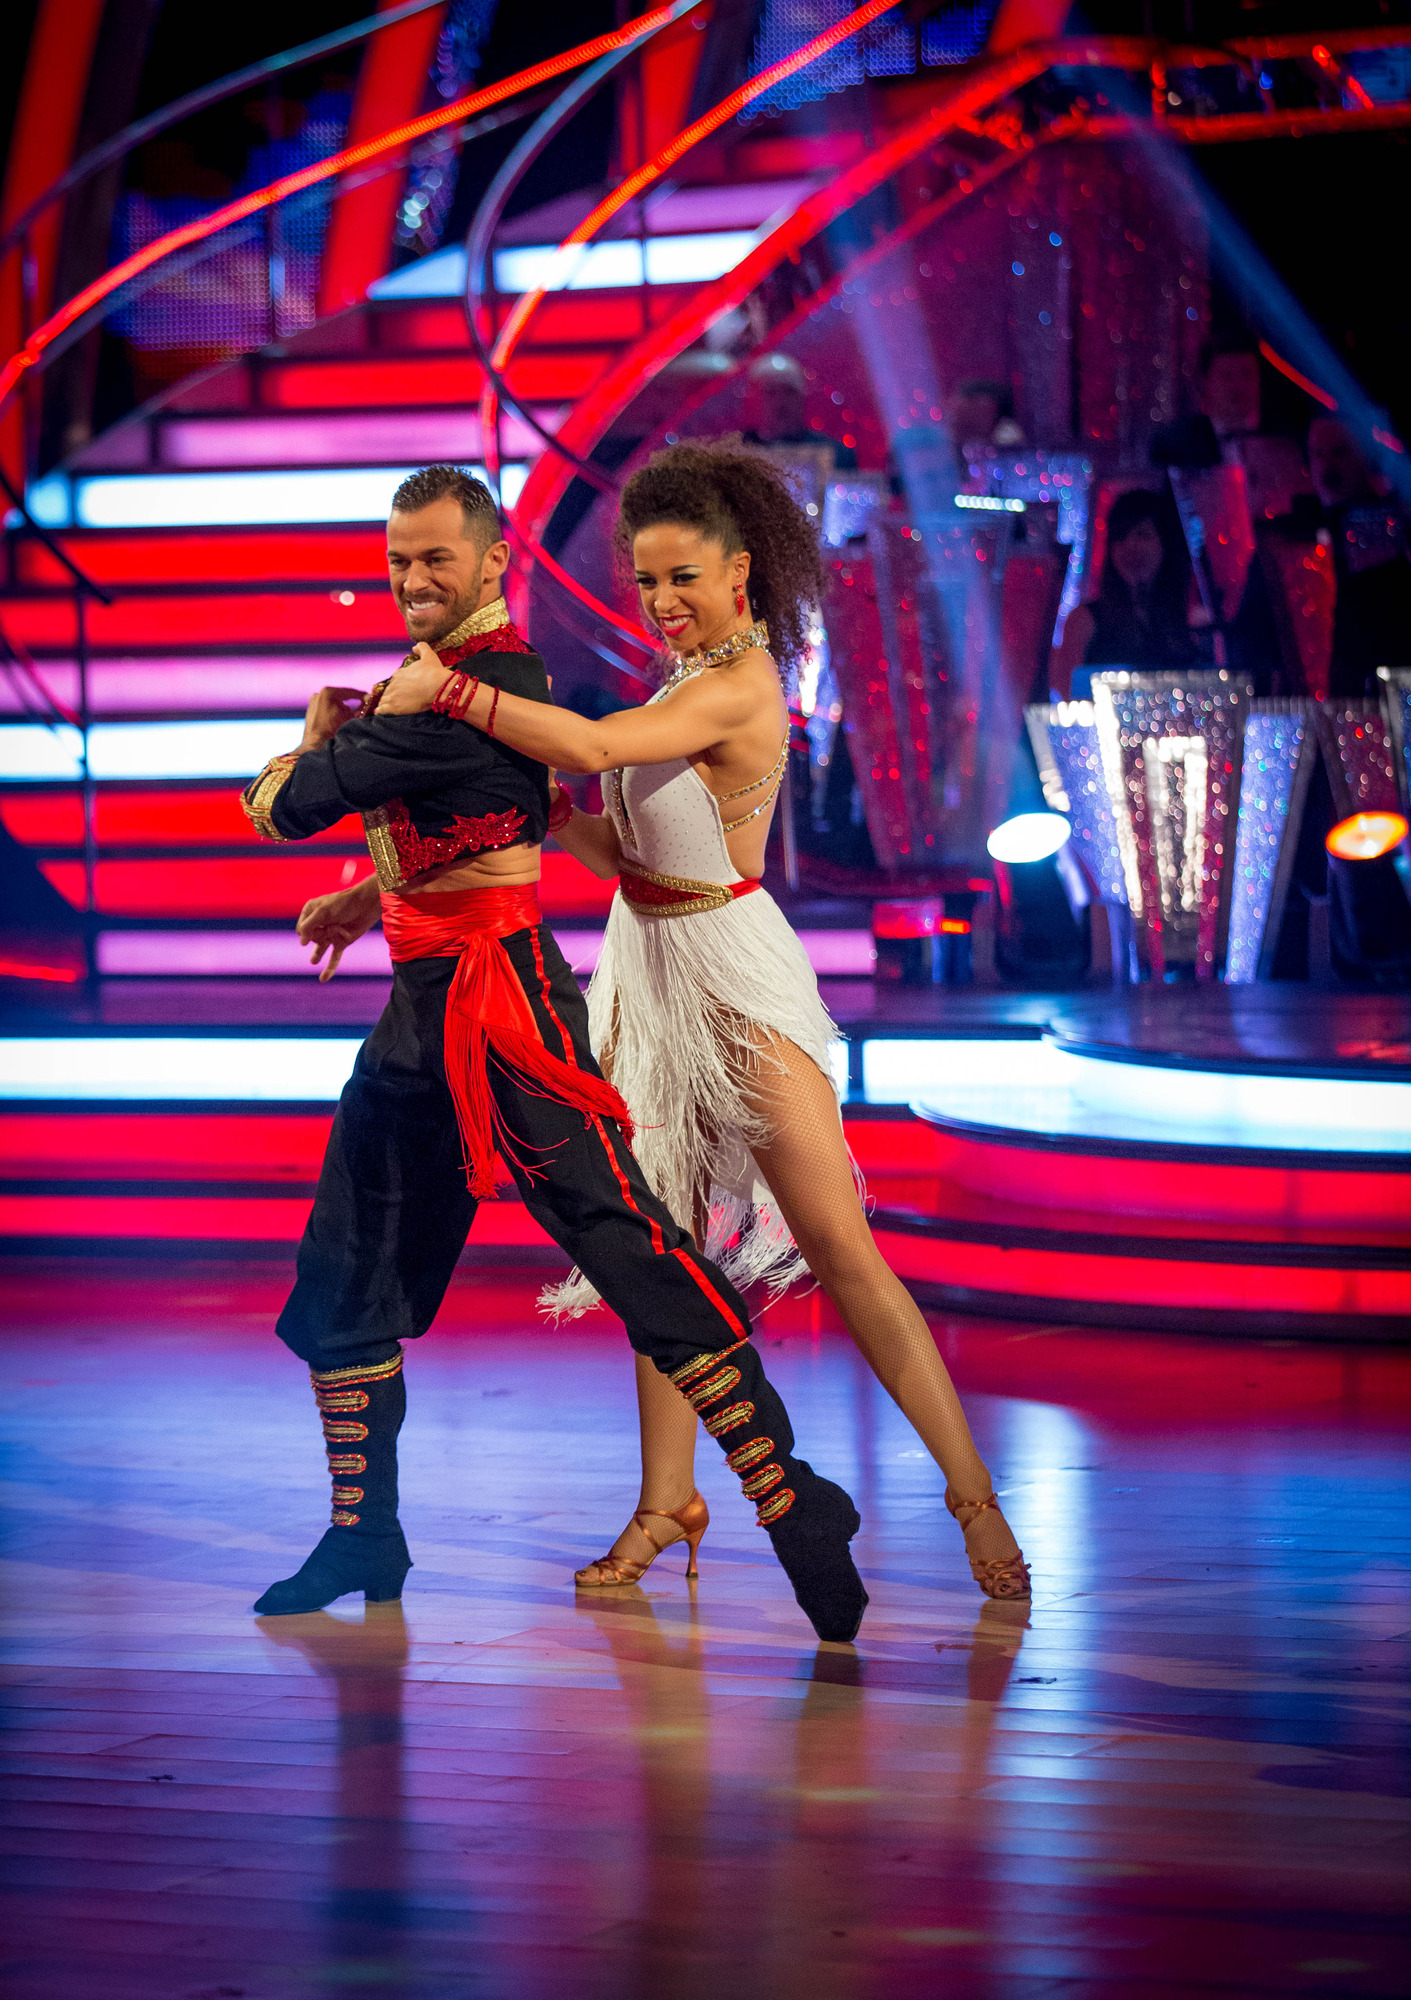 Strictly Come Dancing final 2013: Twitter outrage as viewers claim Natalie Gumede was robbed of victory